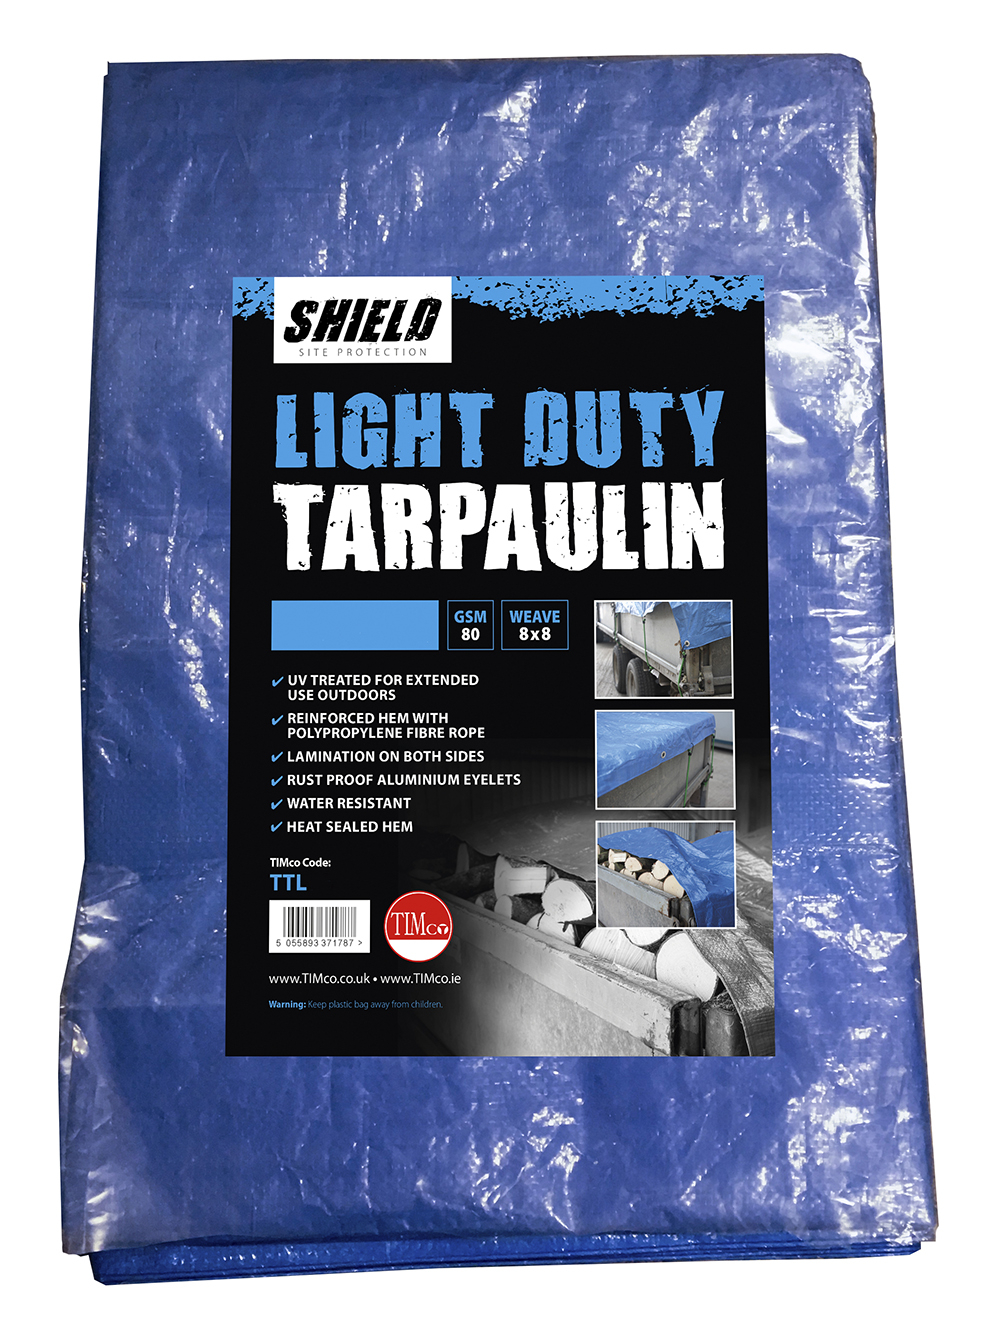 Shield Light Duty Tarpaulin 2m x 3m